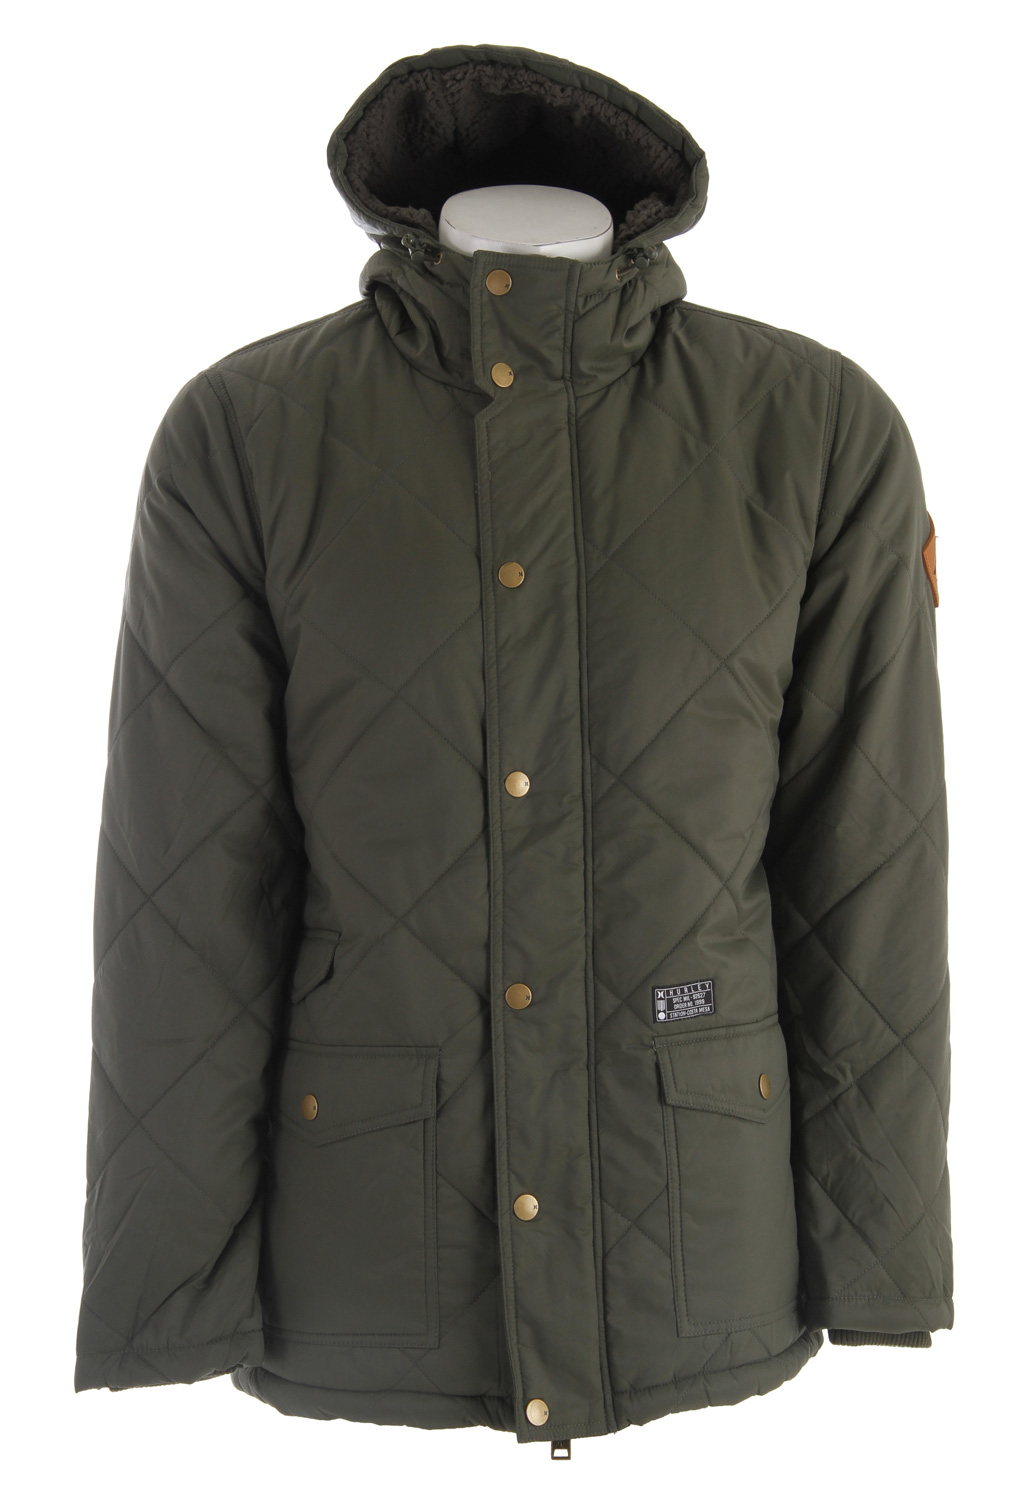 Surf Hurley Disorder Jacket Dark Forest - $54.95